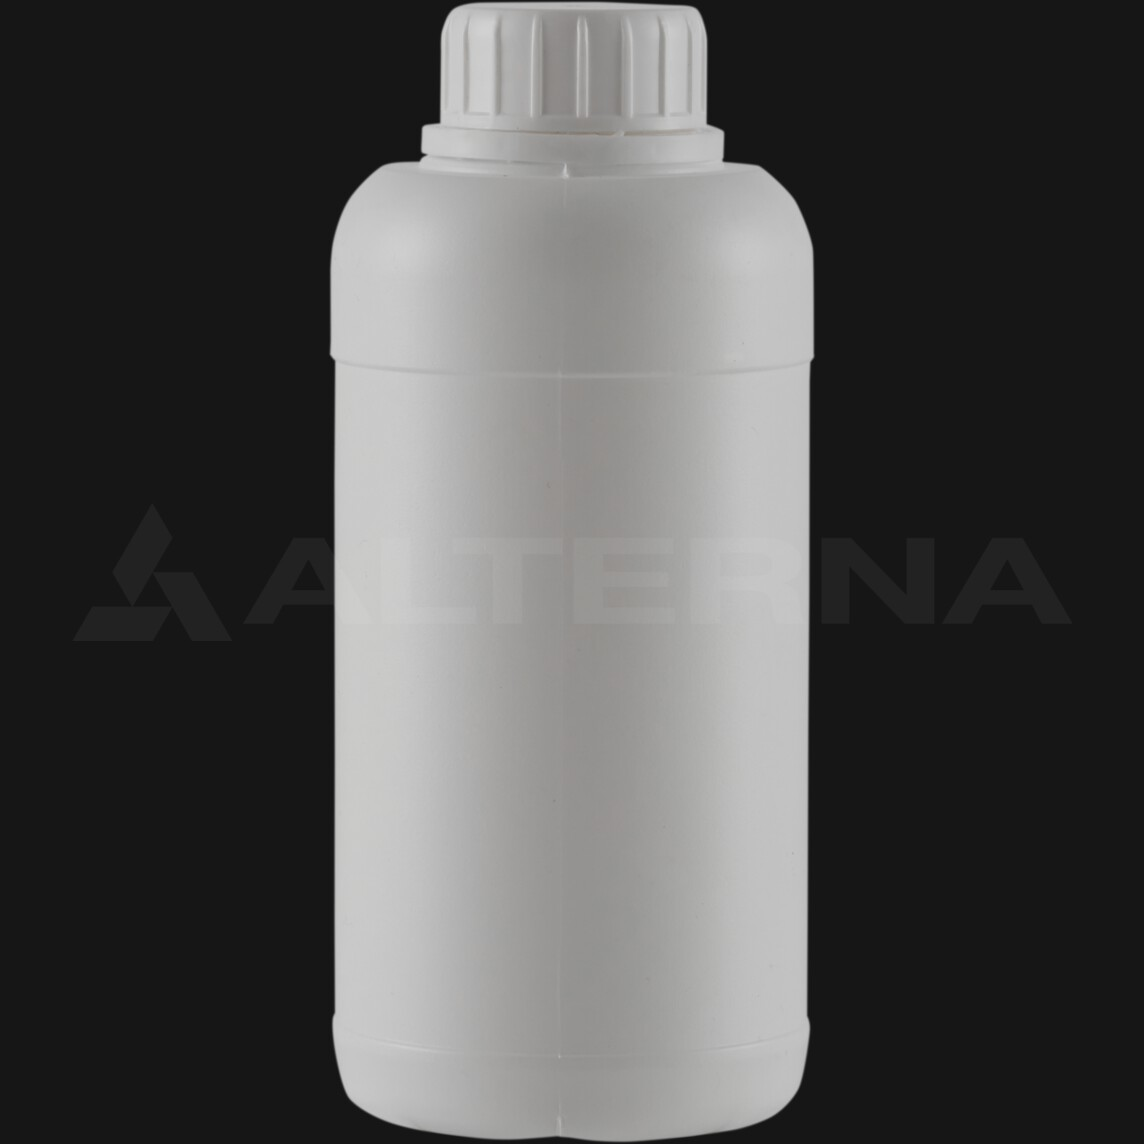 500 ml HDPE Bottle with 38 mm Foam Seal Secure Cap